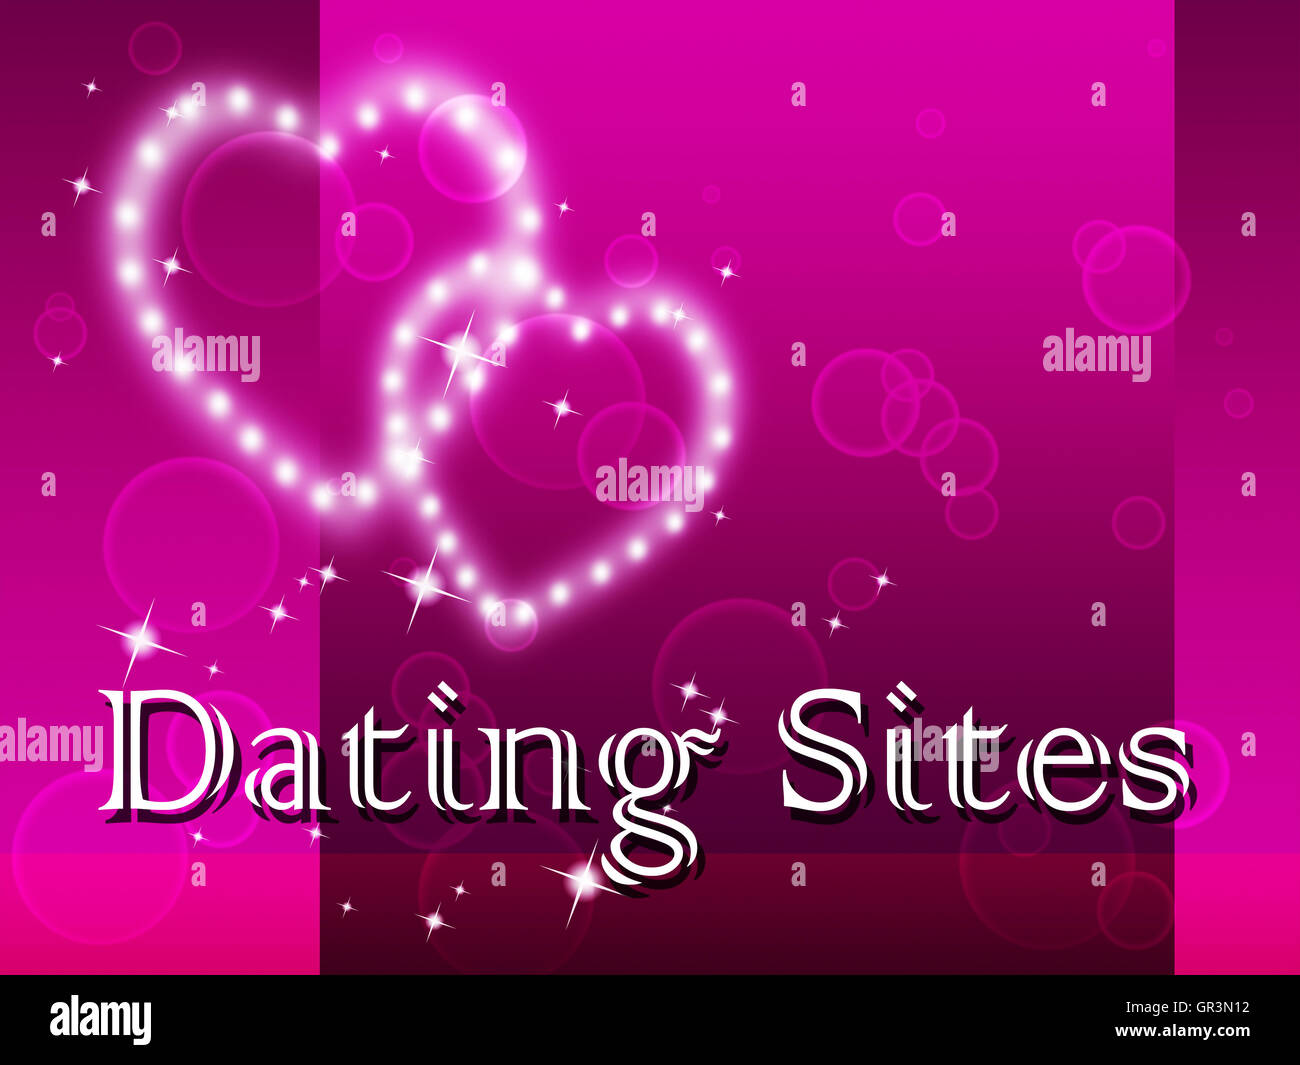 Dating-Orte melbourne